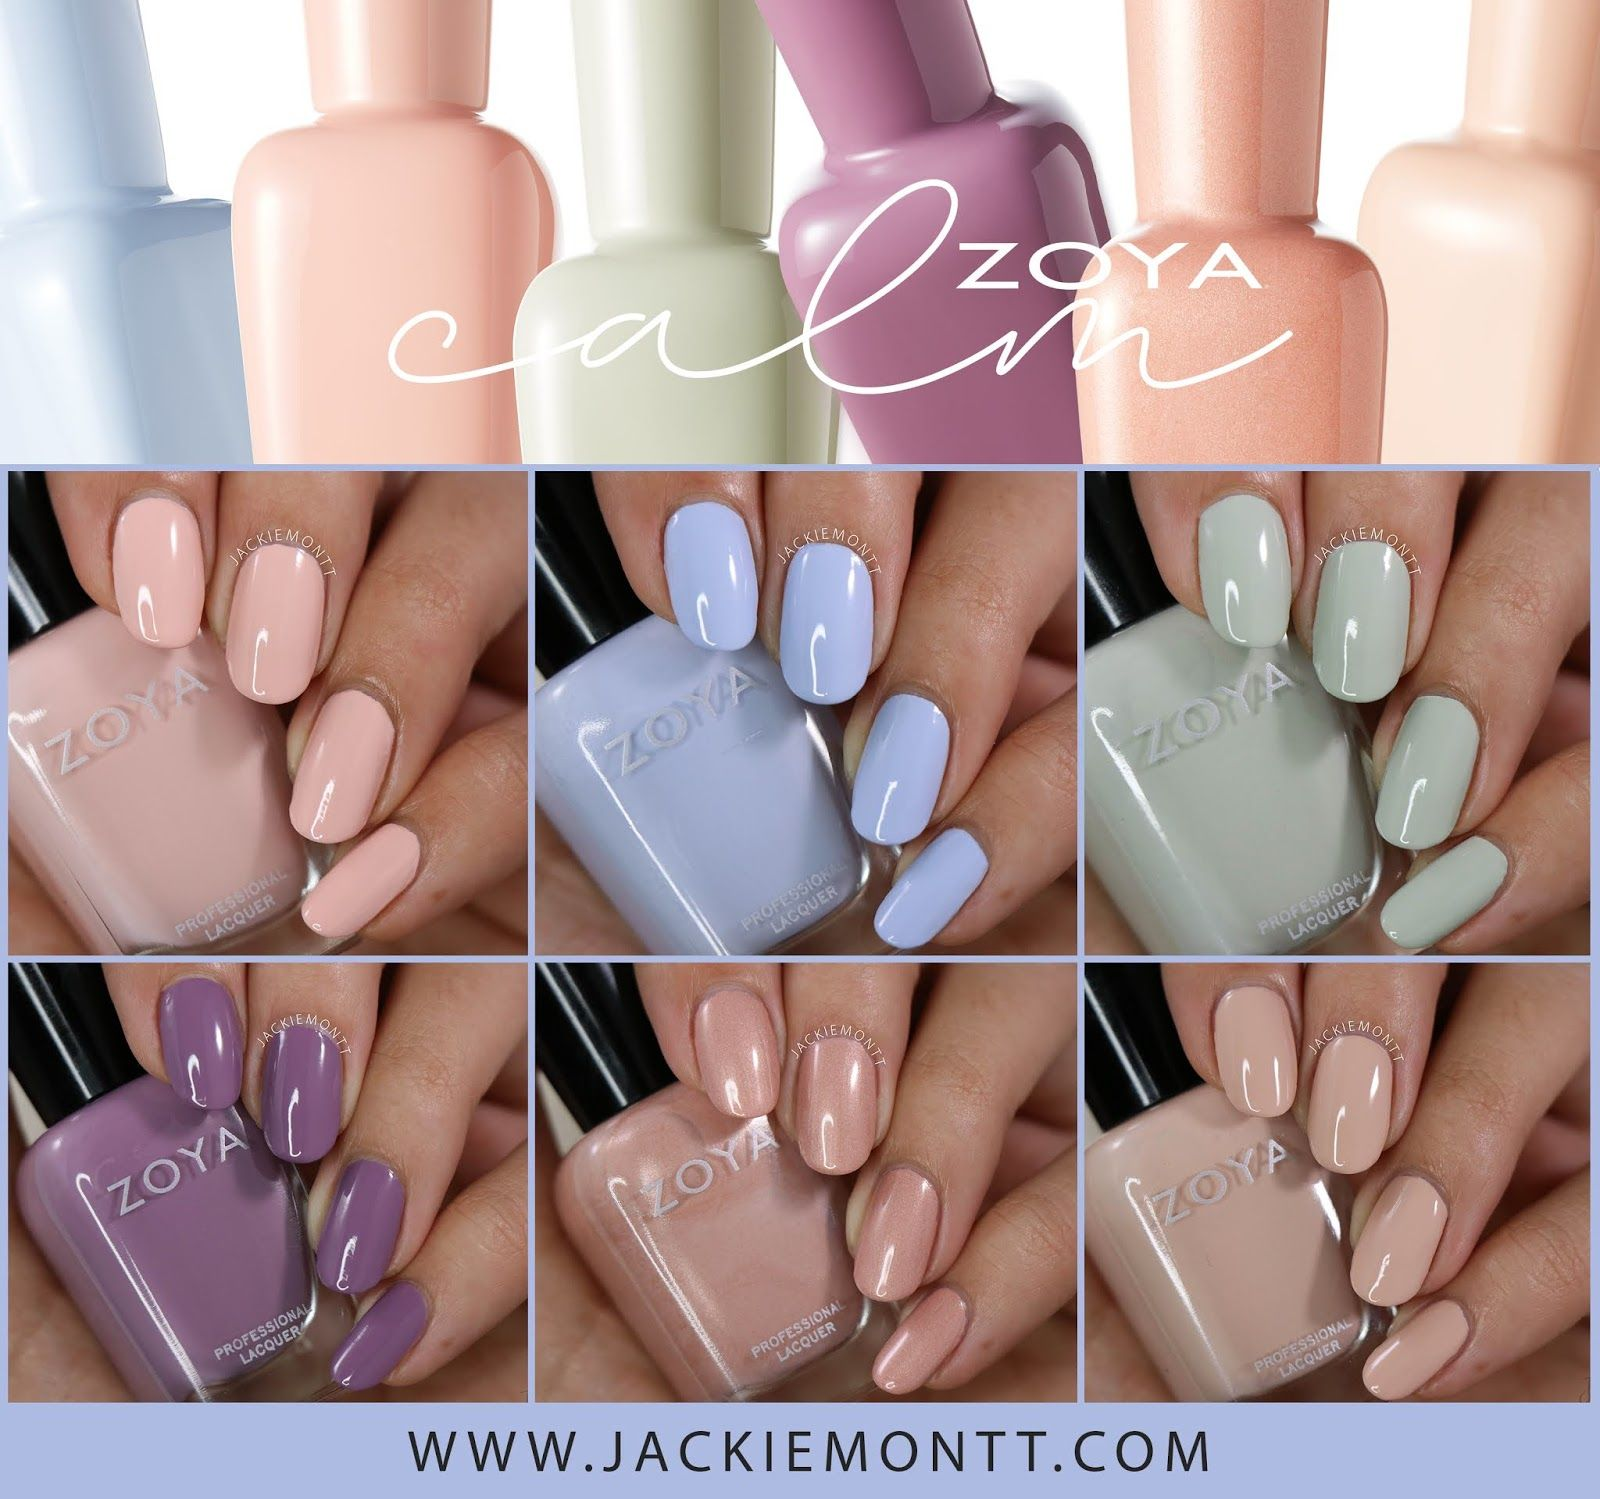 Zoya Calm Collection Spring 2020 In 2020 Dream Nails Manicure